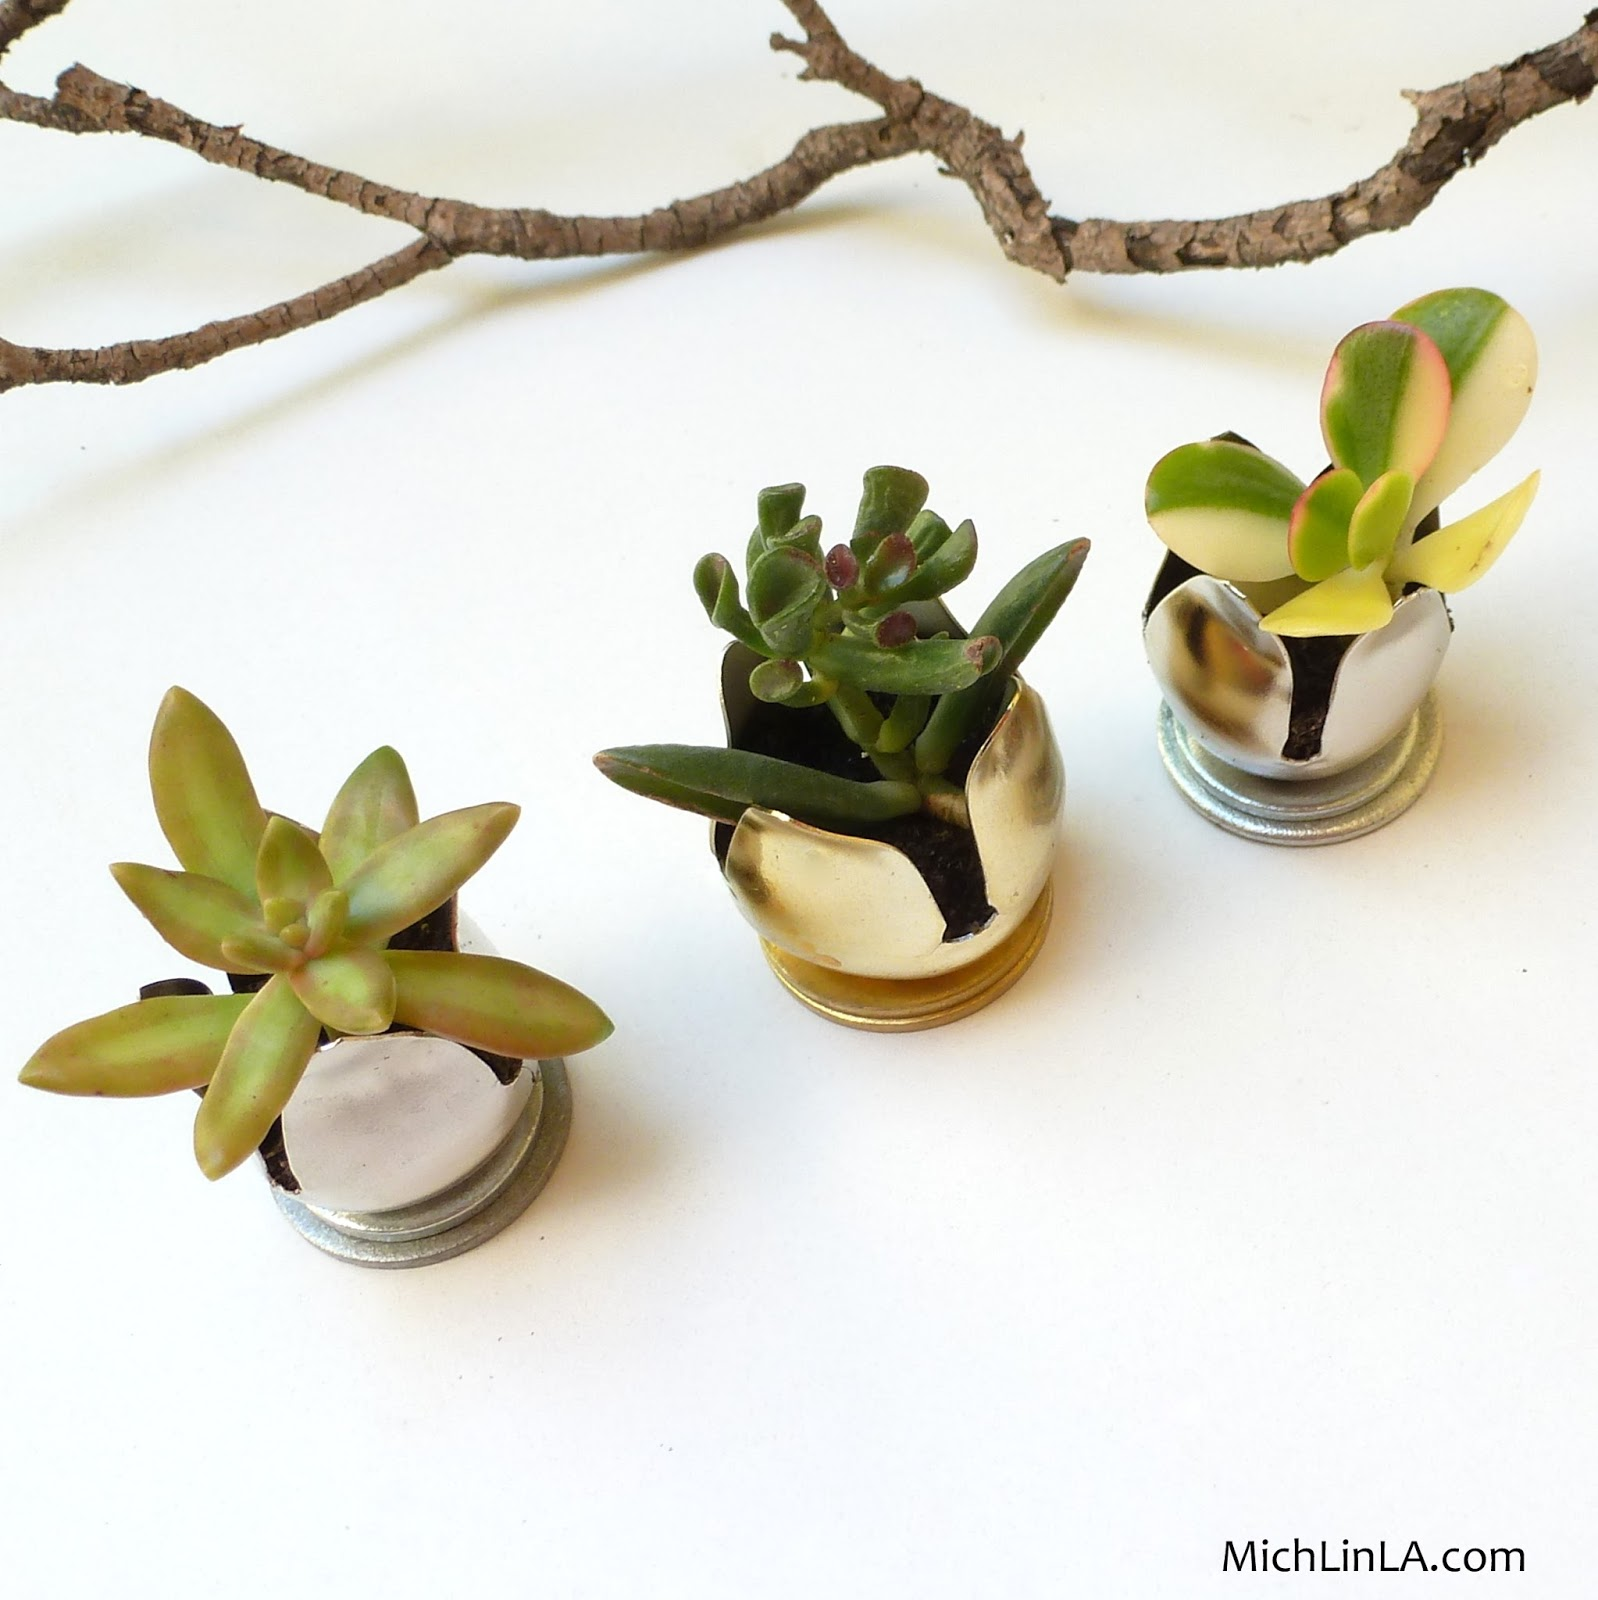 Mich L. in L.A.: Tiny Succulent Planter - Made From A Jingle Bell